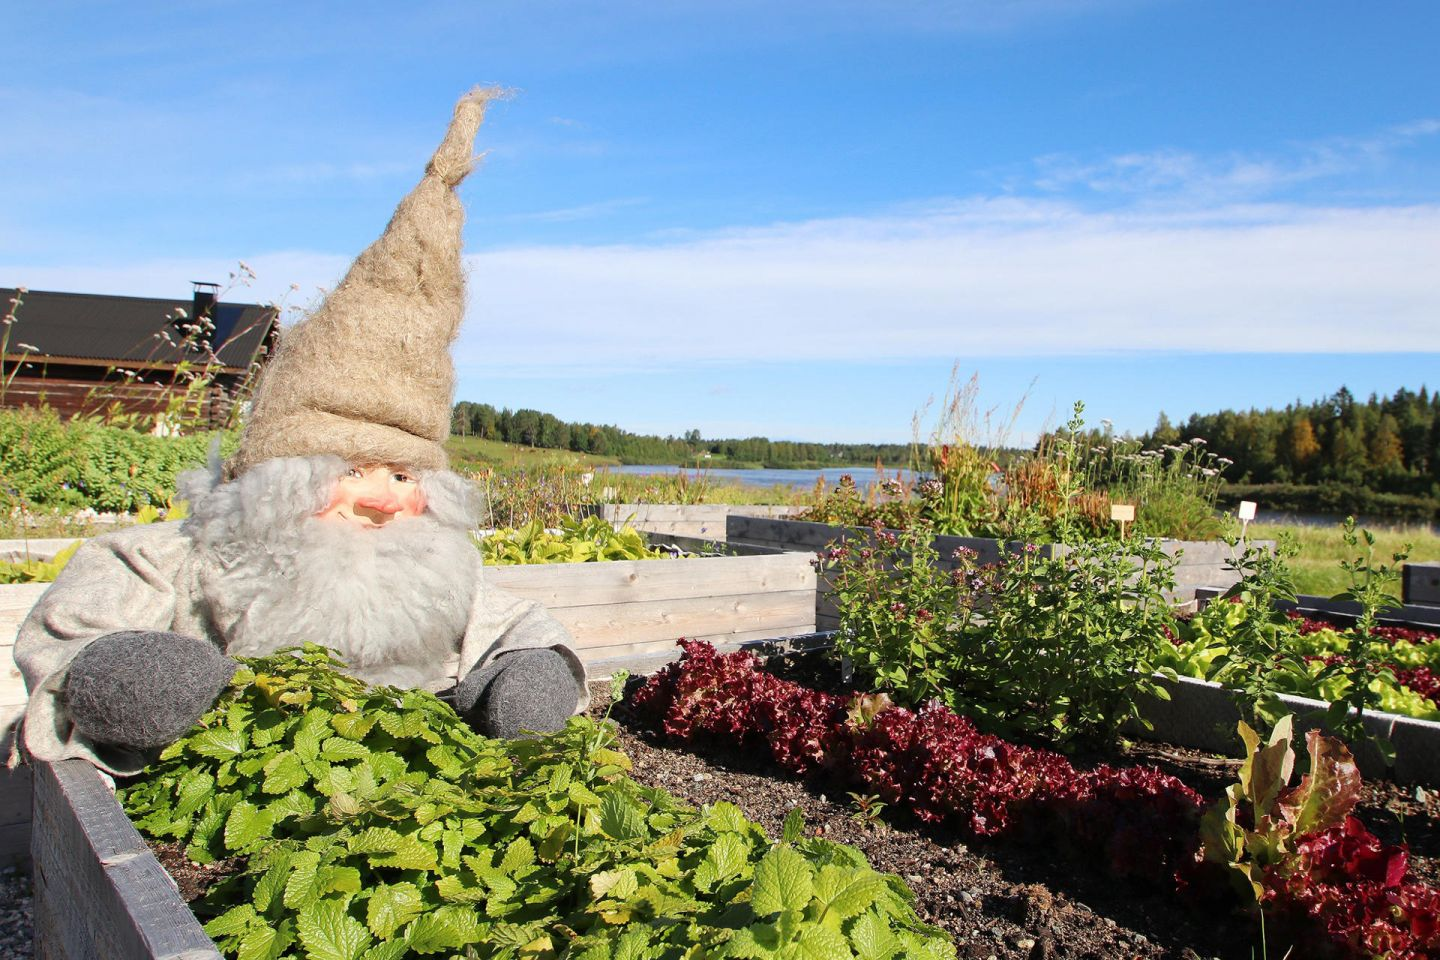 Garden elf at Elves Hideaway in Lapland